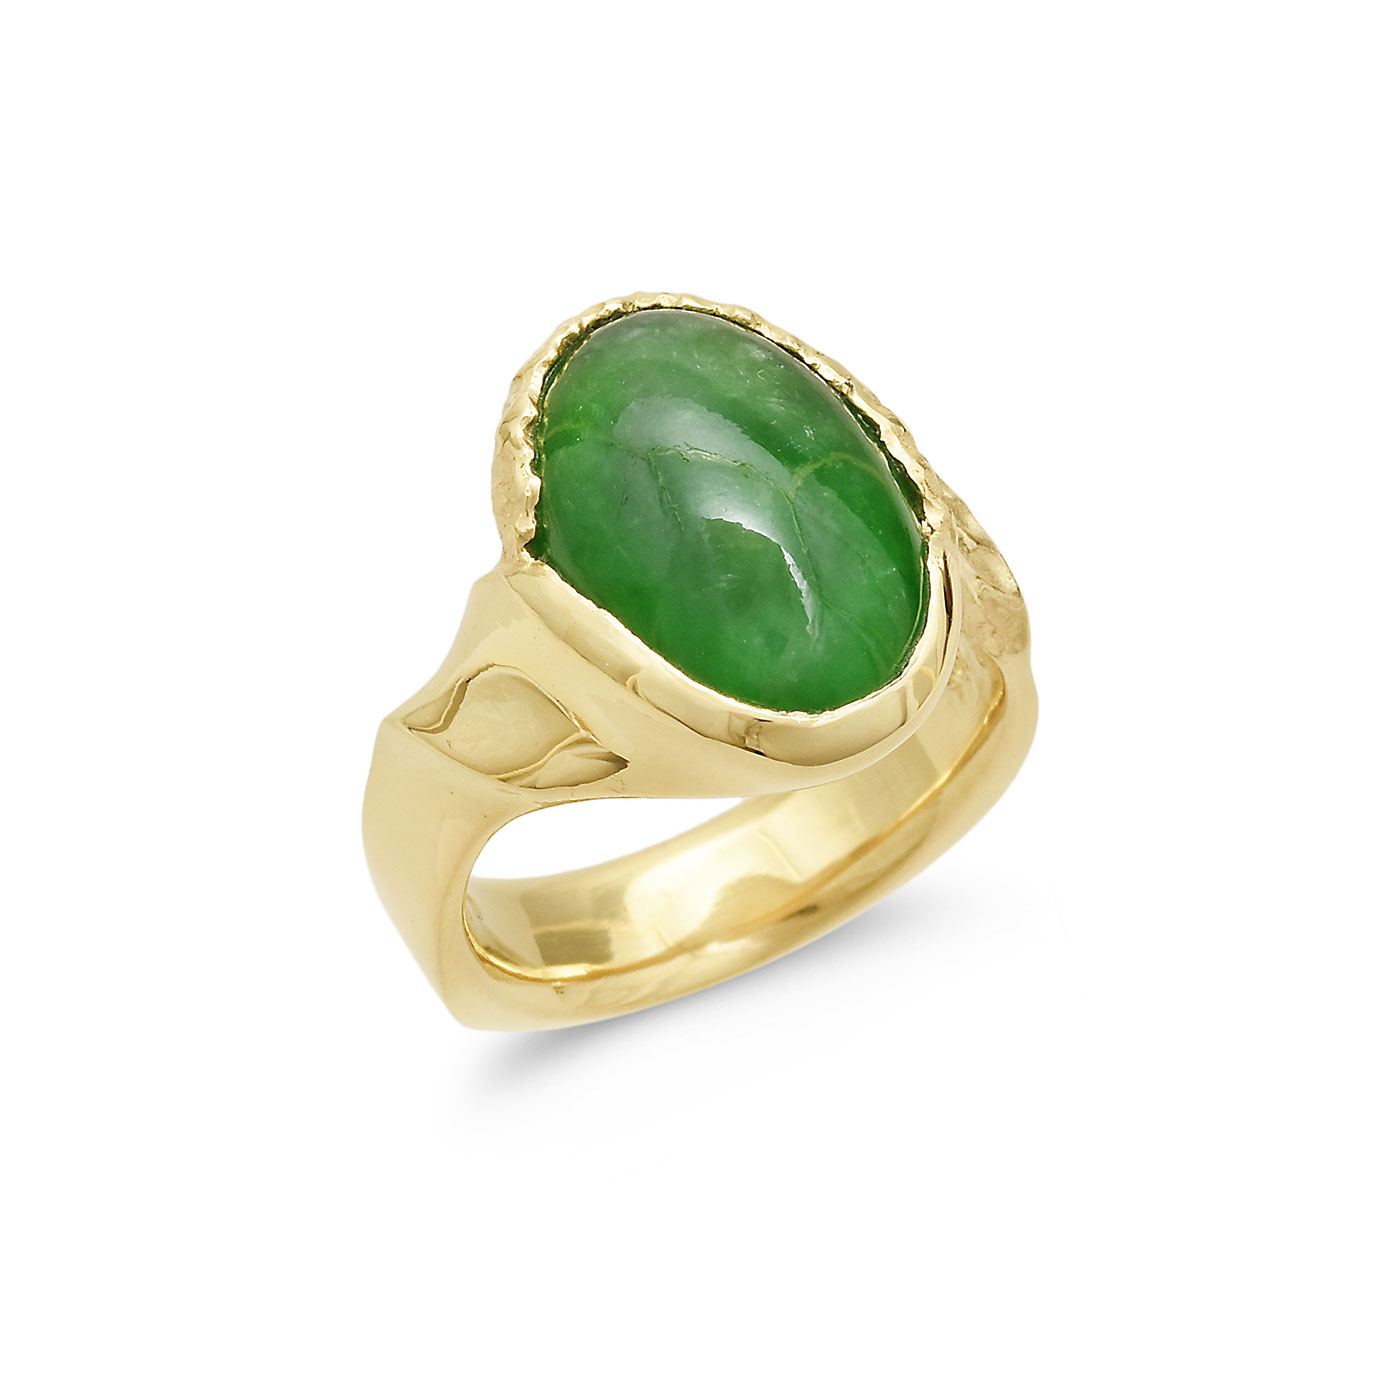 C7572 Oval Green Jadeite Ring